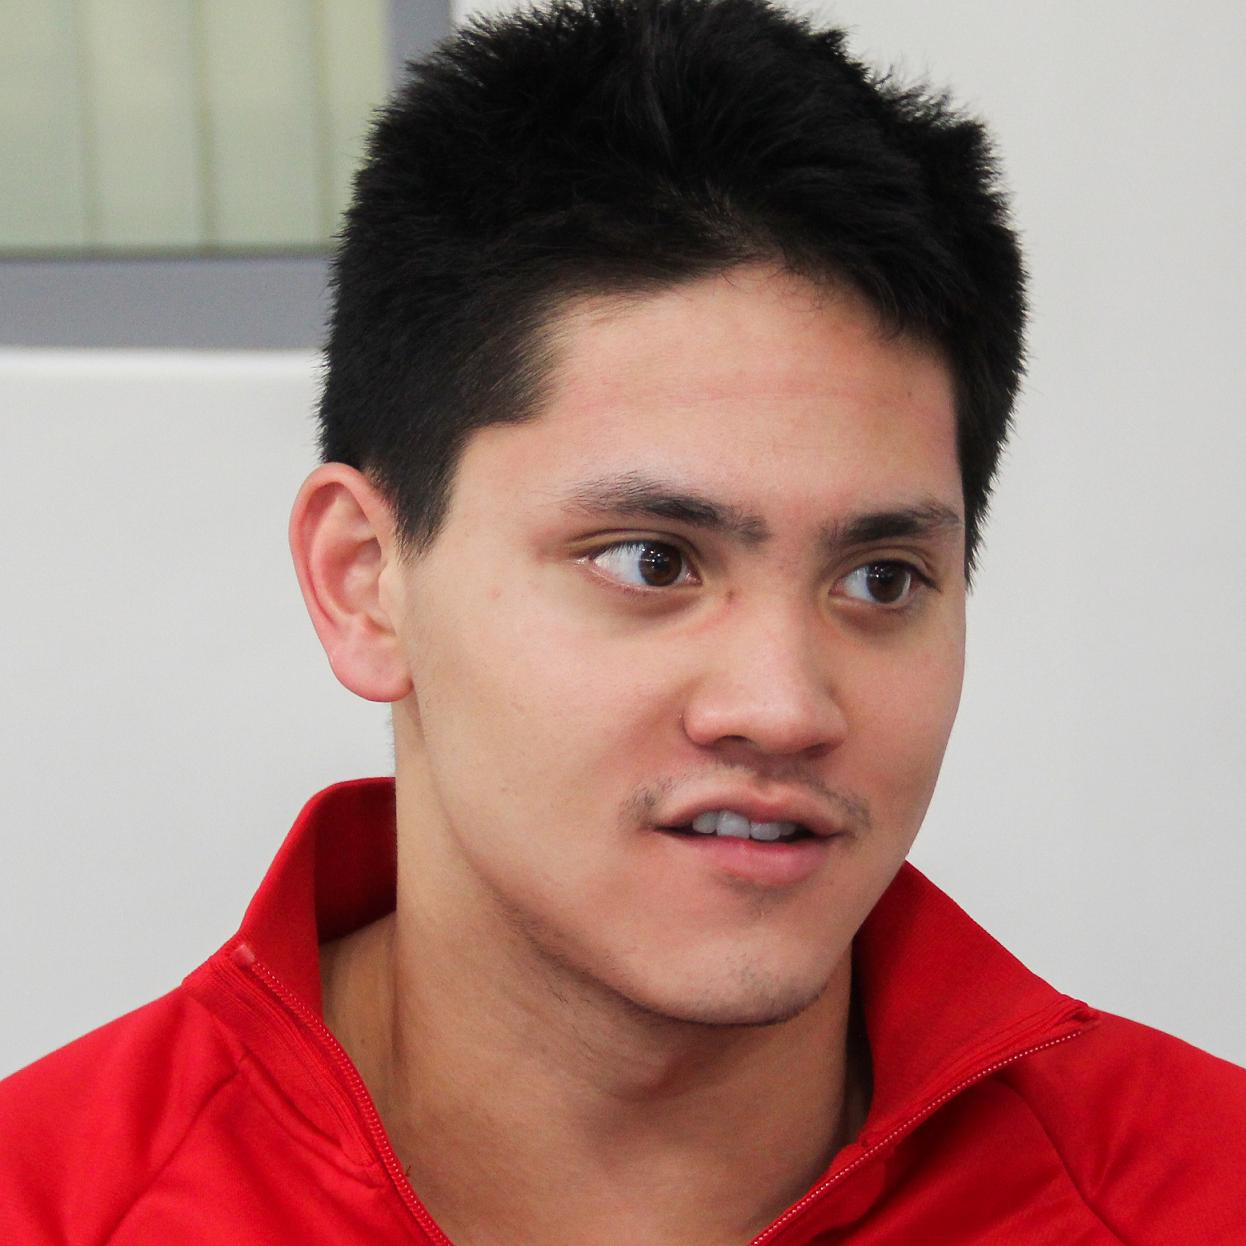 Joseph Schooling Bio, Net Worth, Facts